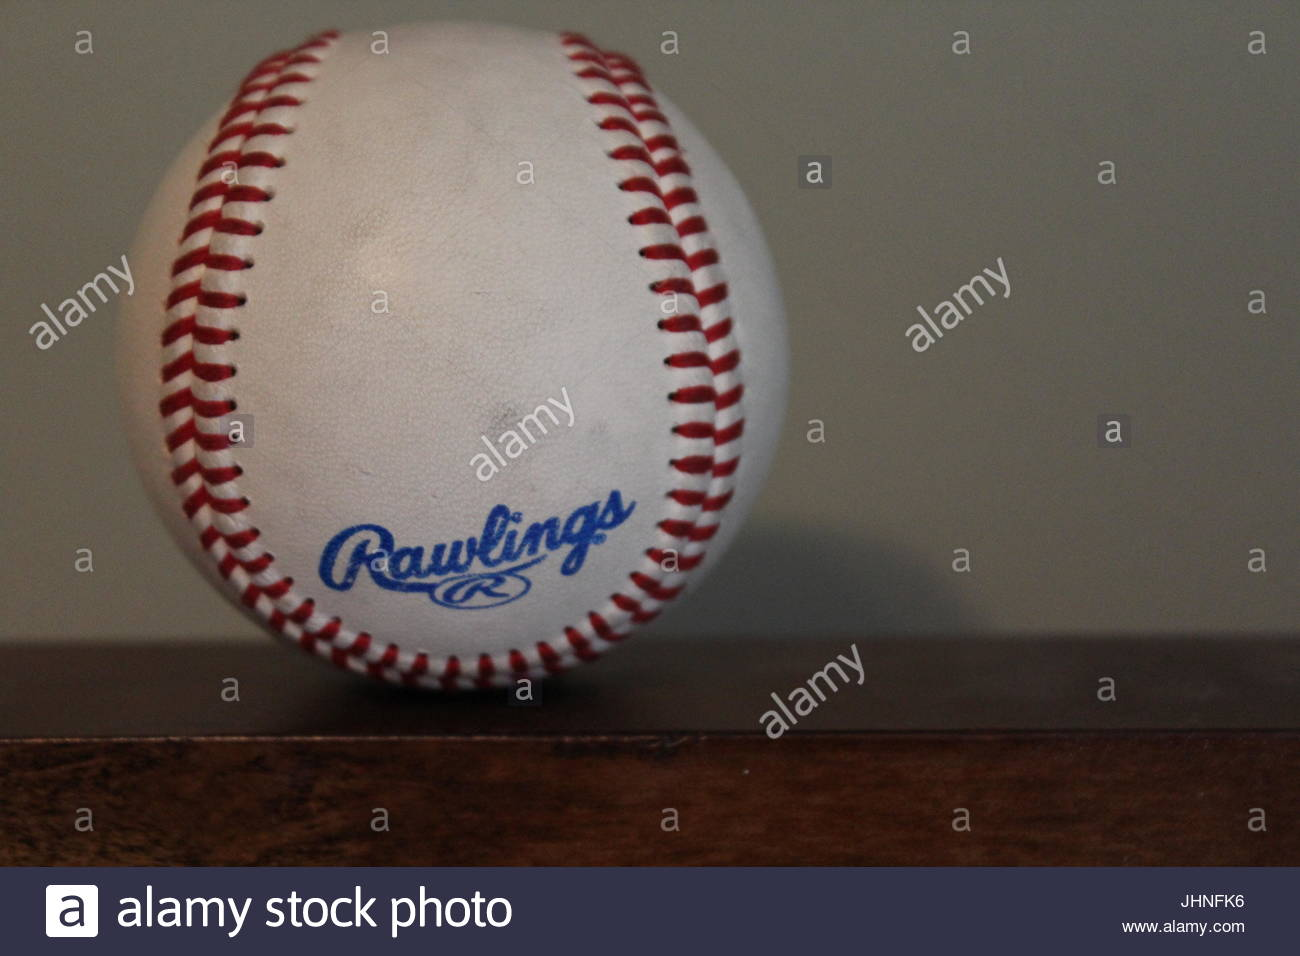 Ripken Youth Baseball - Stock Image